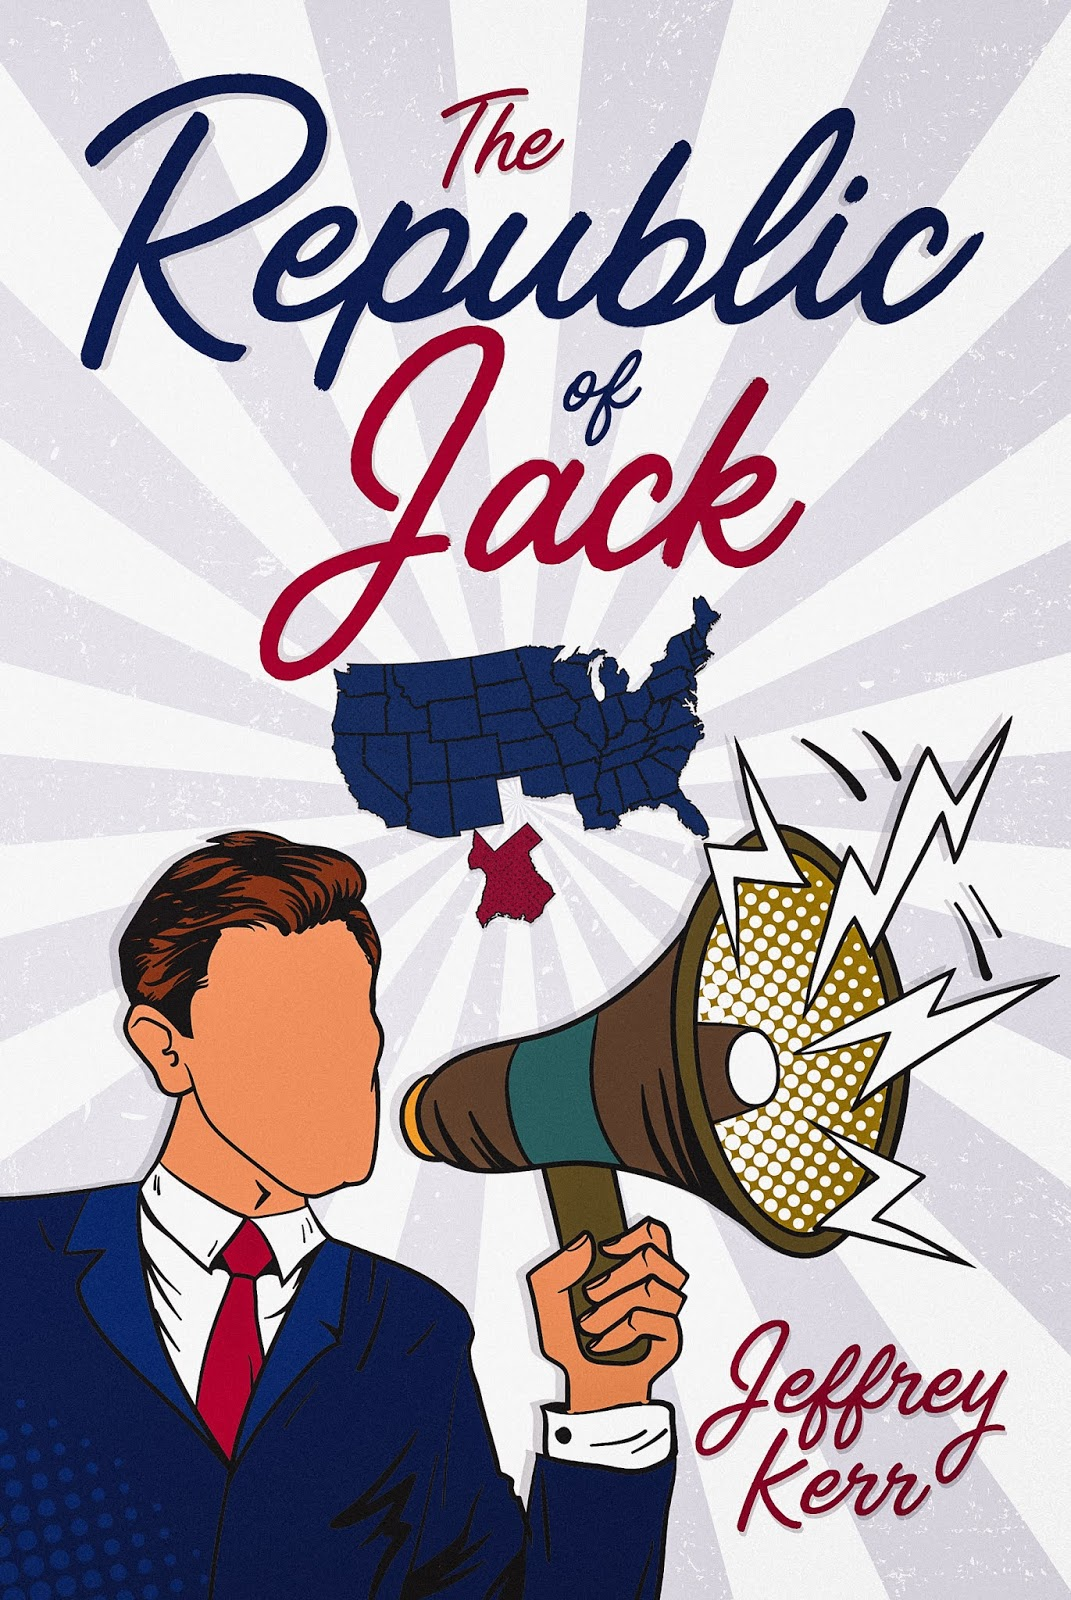 The Republic of Jack book cover